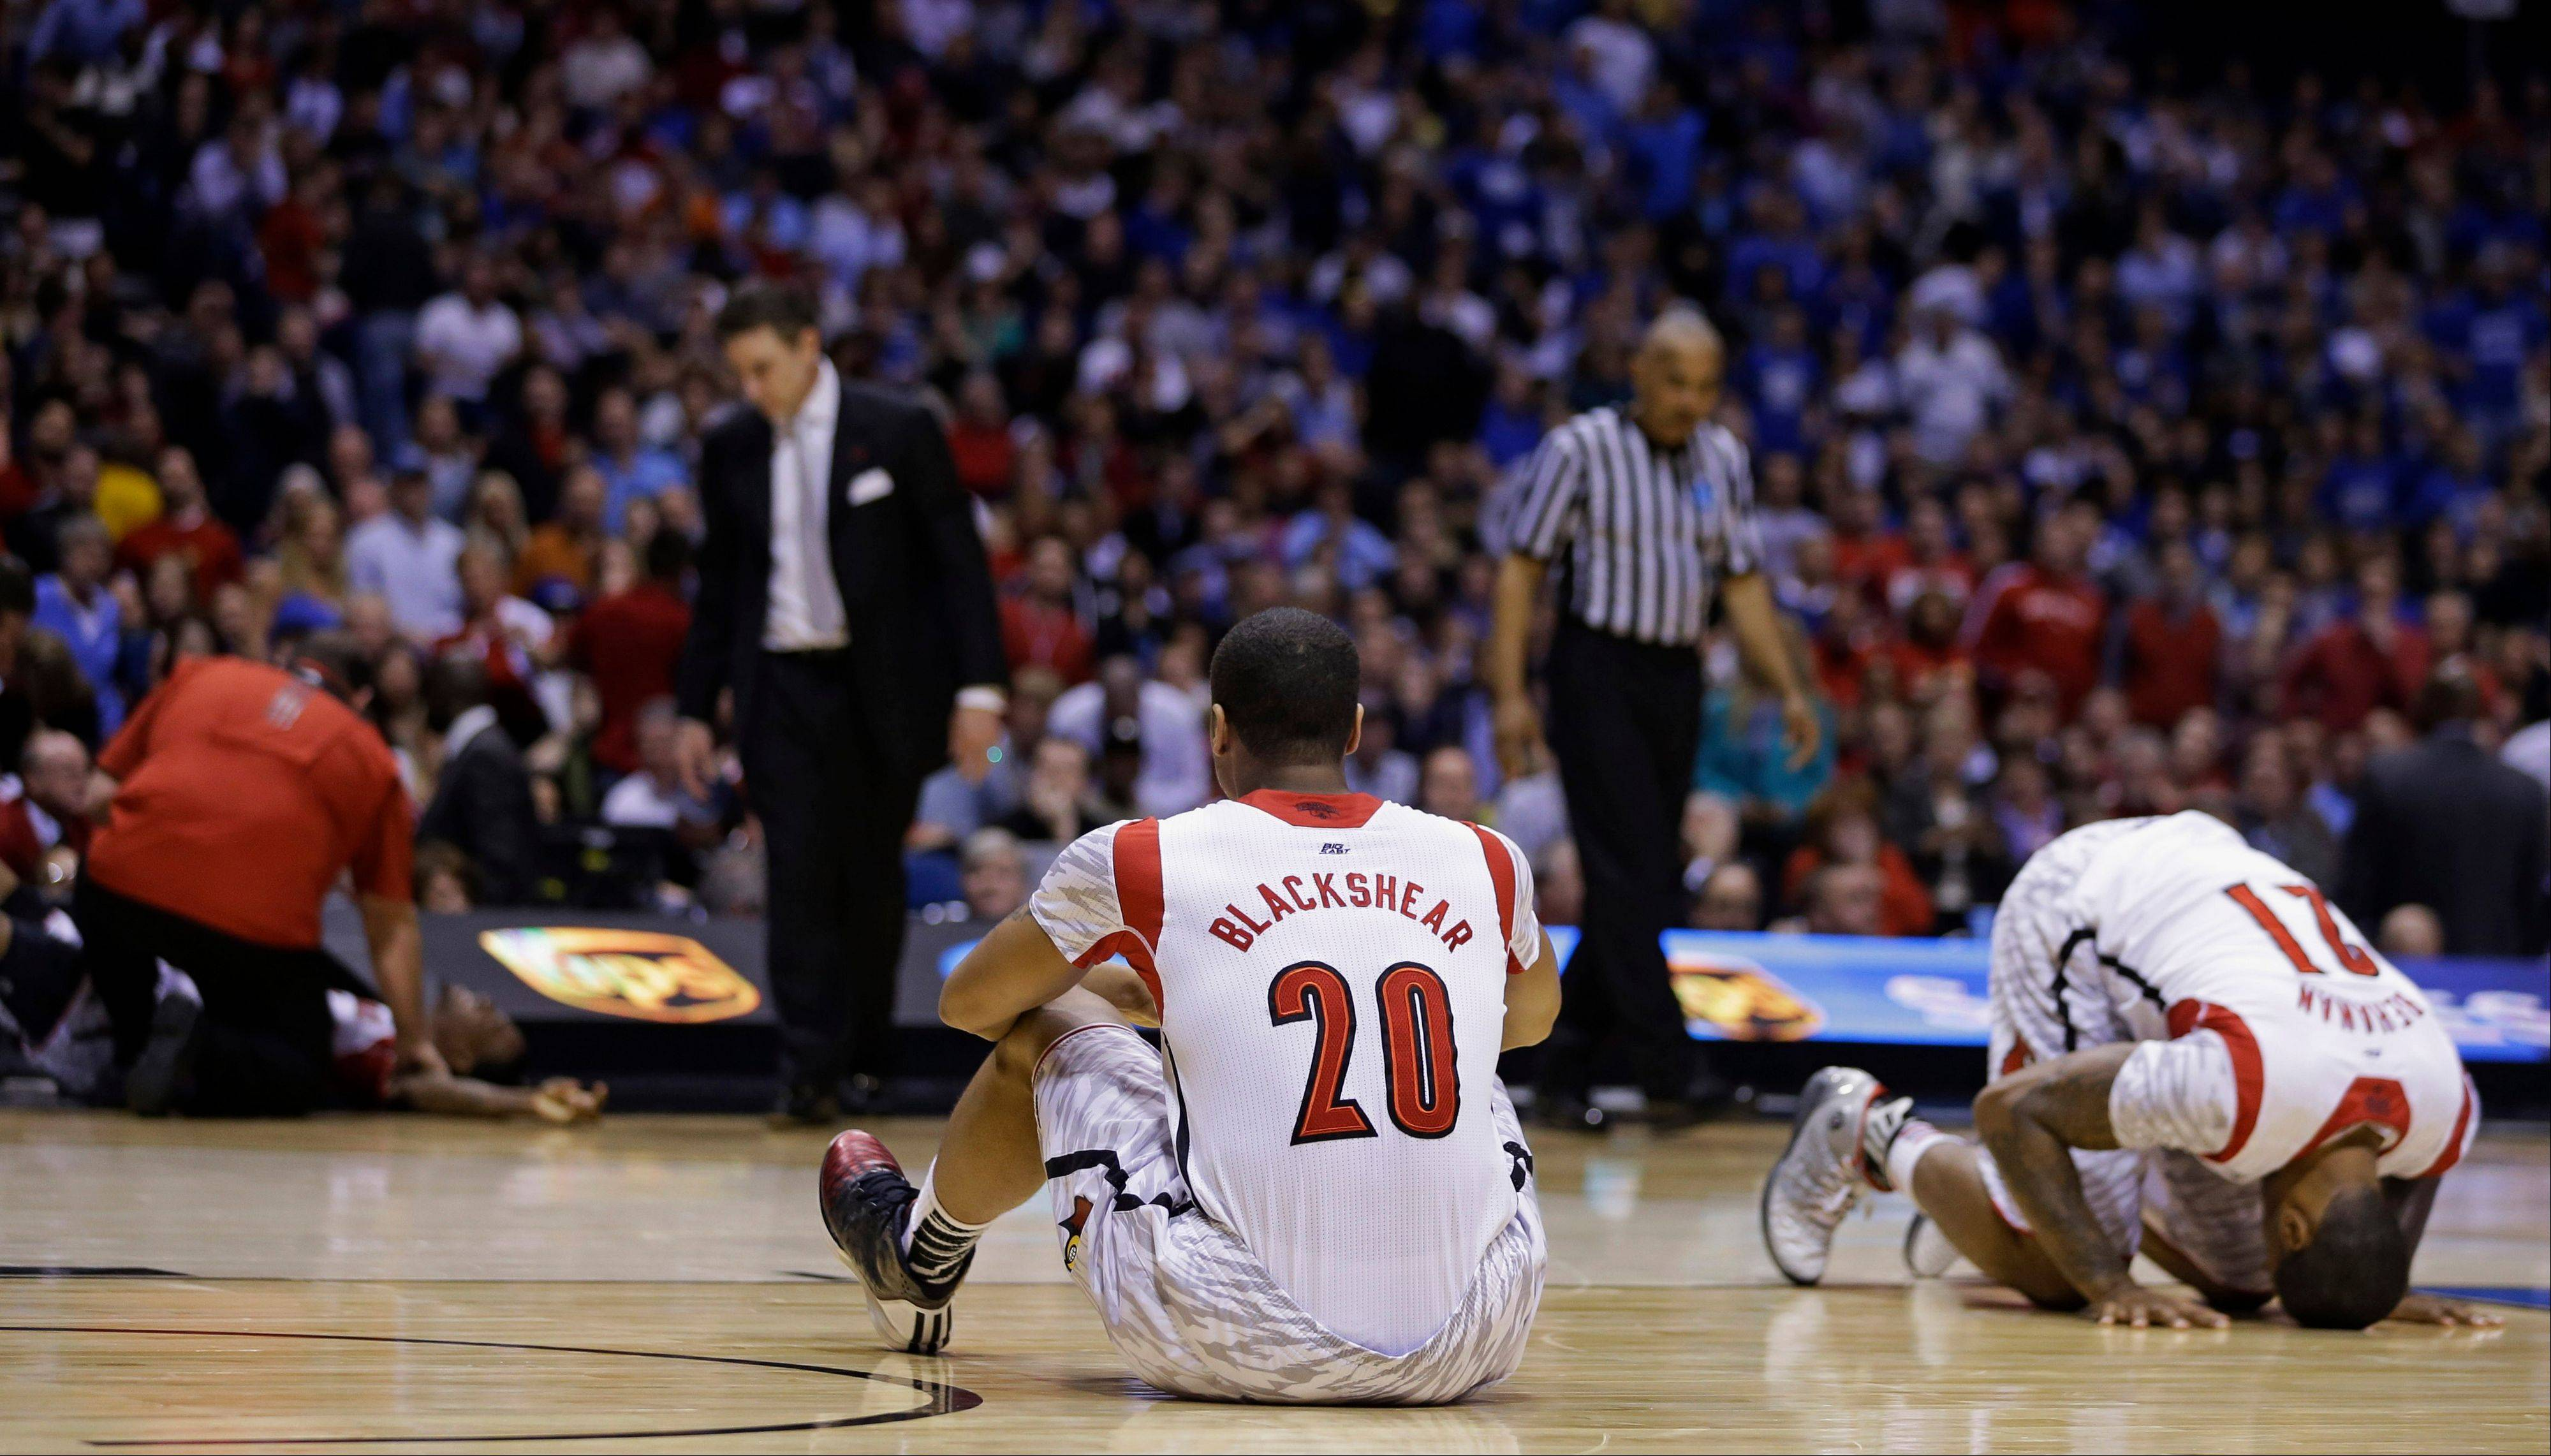 Louisville's Wayne Blackshear (20) and Chane Behanan (21) react to Kevin Ware's injury during the first half of the Midwest Regional final in the NCAA college basketball tournament, Sunday, March 31, 2013, in Indianapolis.